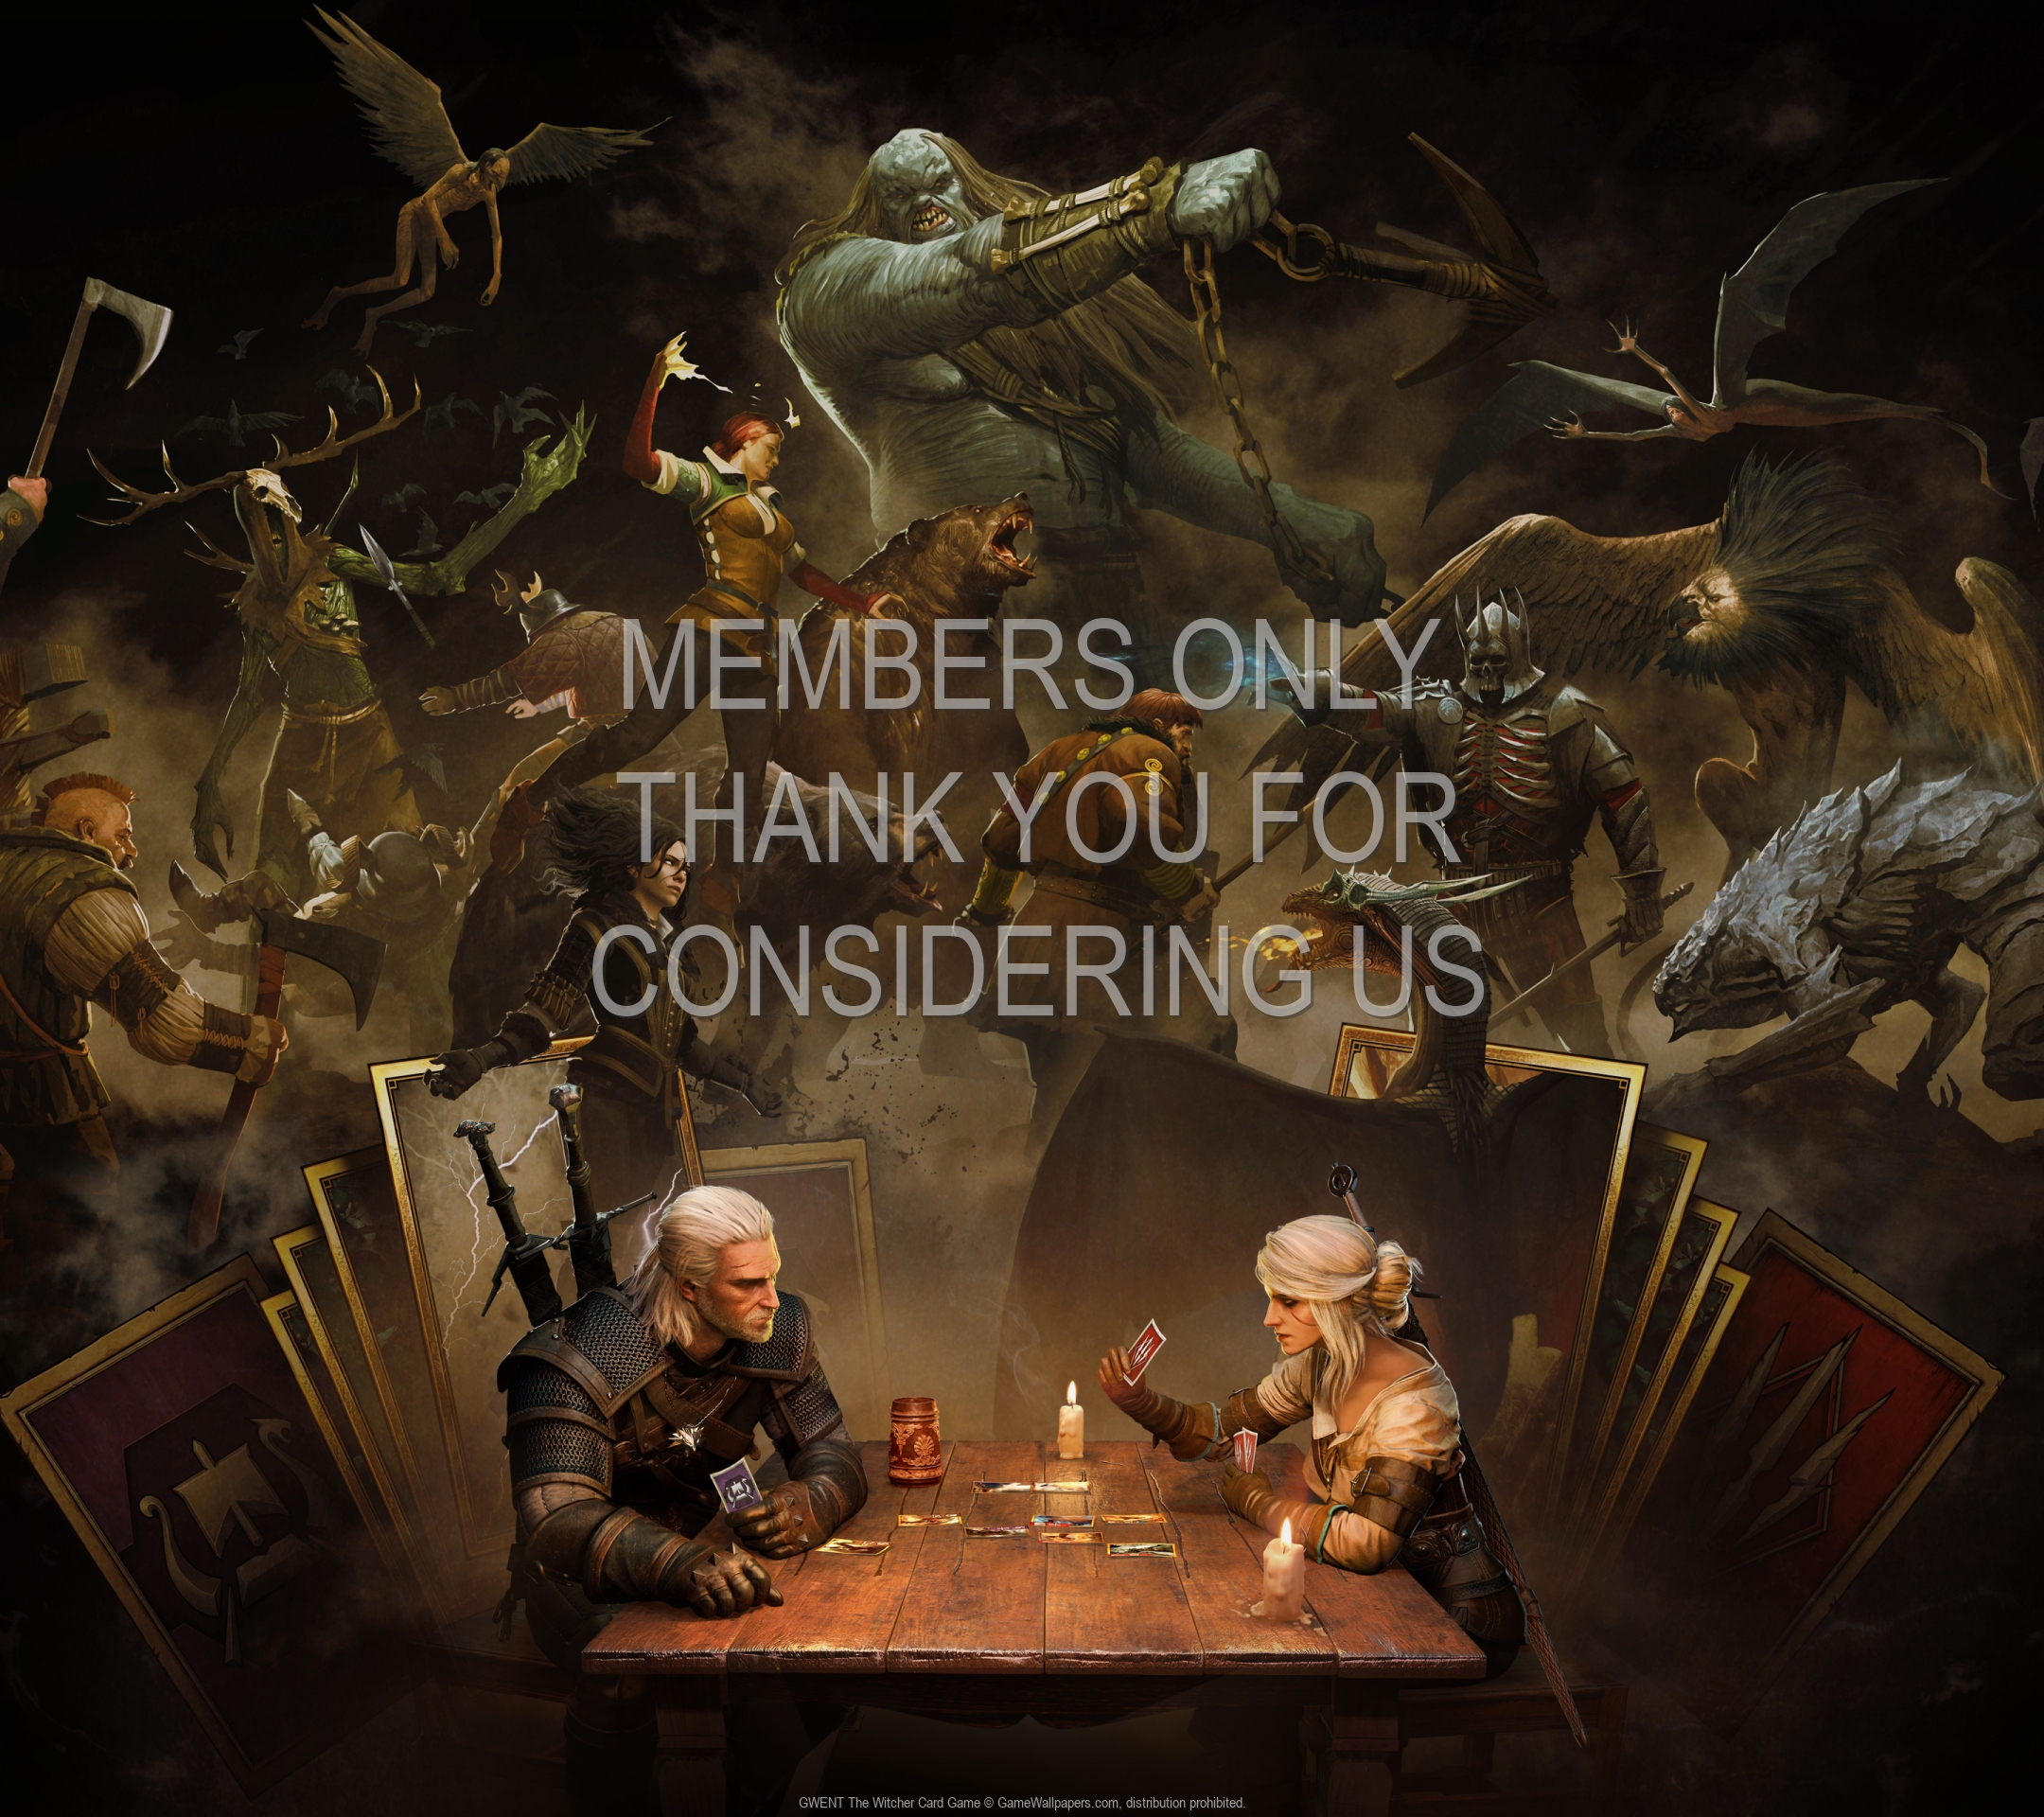 GWENT: The Witcher Card Game 1920x1080 Mobiele achtergrond 07